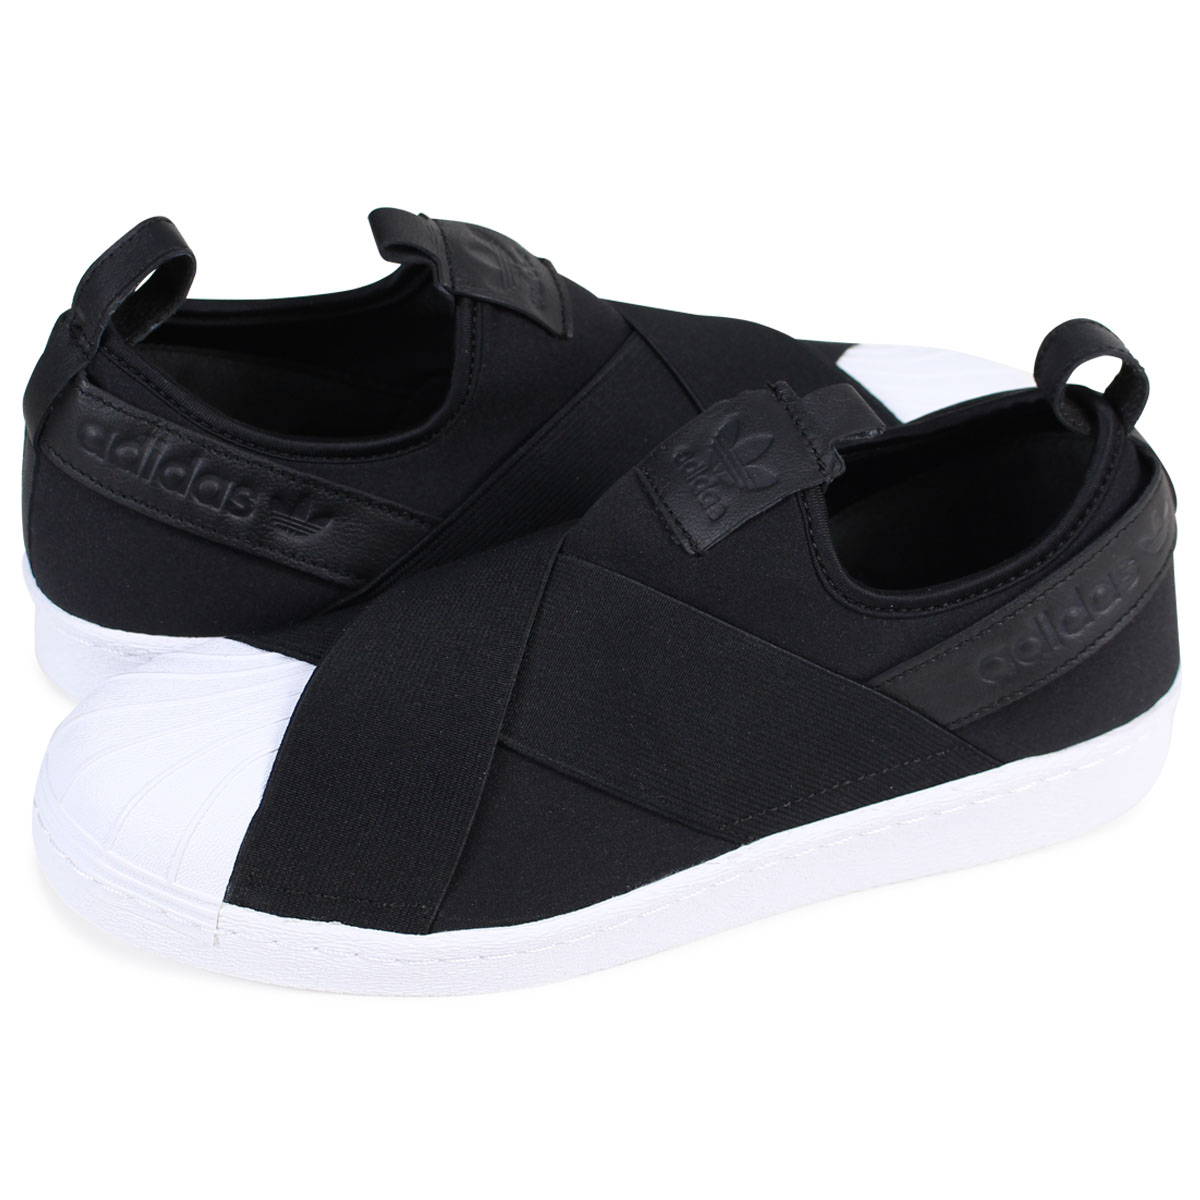 adidas Originals SUPERSTAR SLIP-ON Adidas superstar sneakers slip-ons men gap Dis BZ0112 black originals [1/30 Shinnyu load]